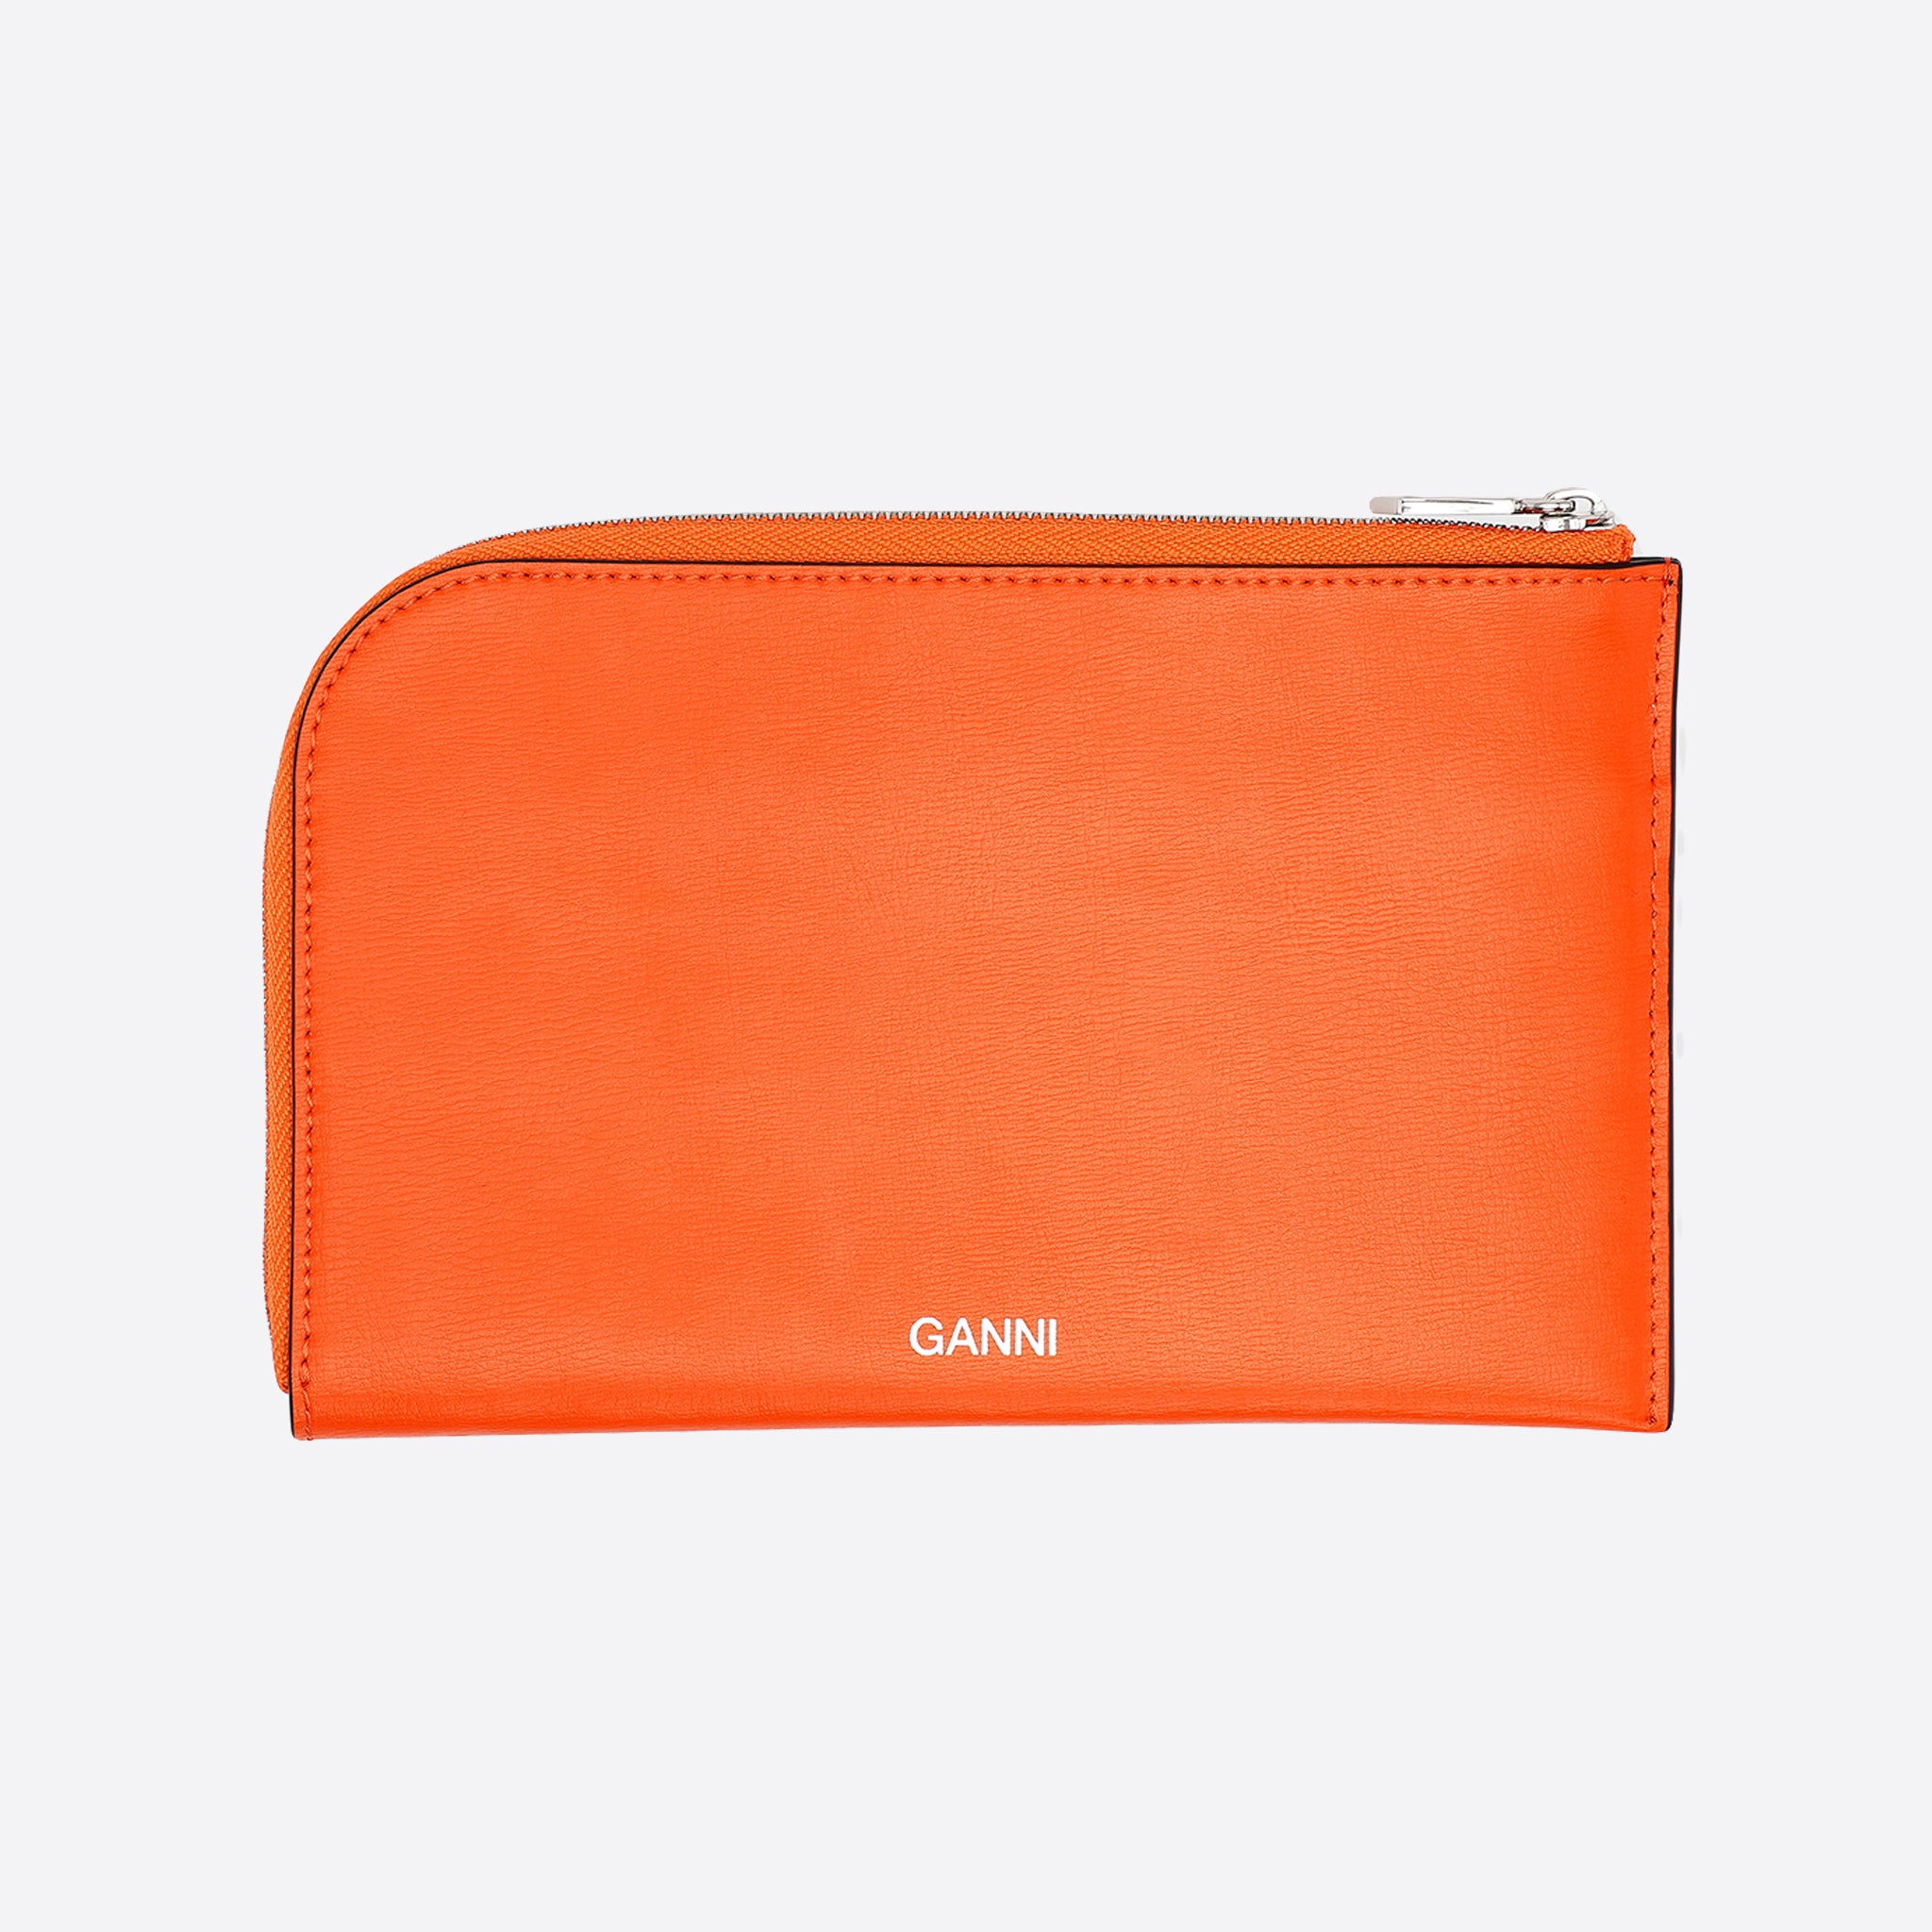 Ganni Textured Leather Wallet in Dragon Fire